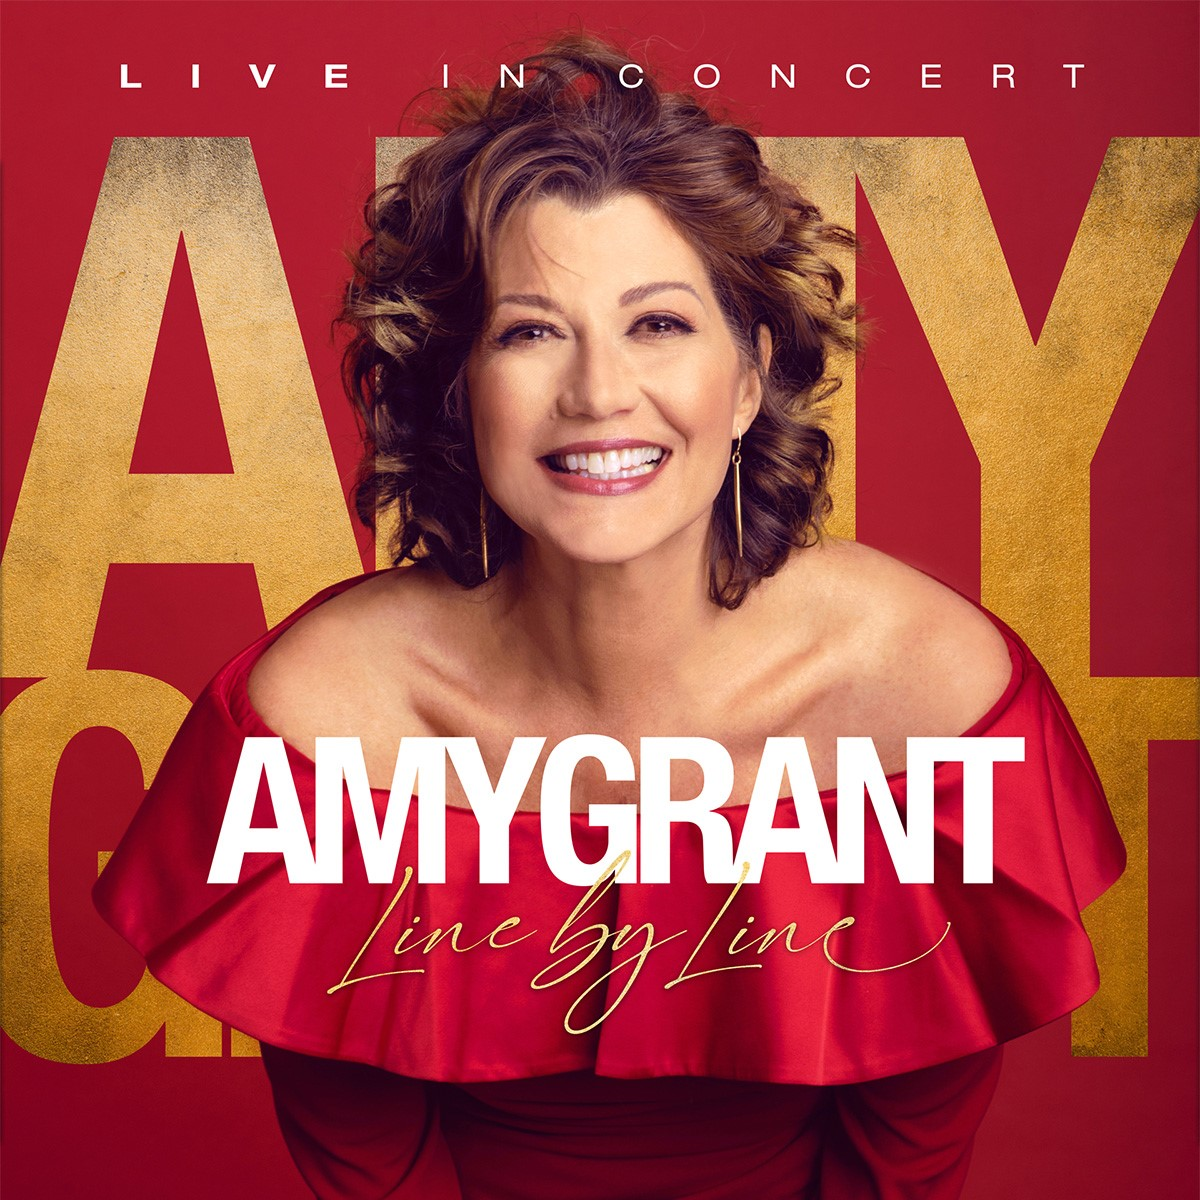 Paramount Presents: Amy Grant Live in Concert   09/25/2021   8:00PM